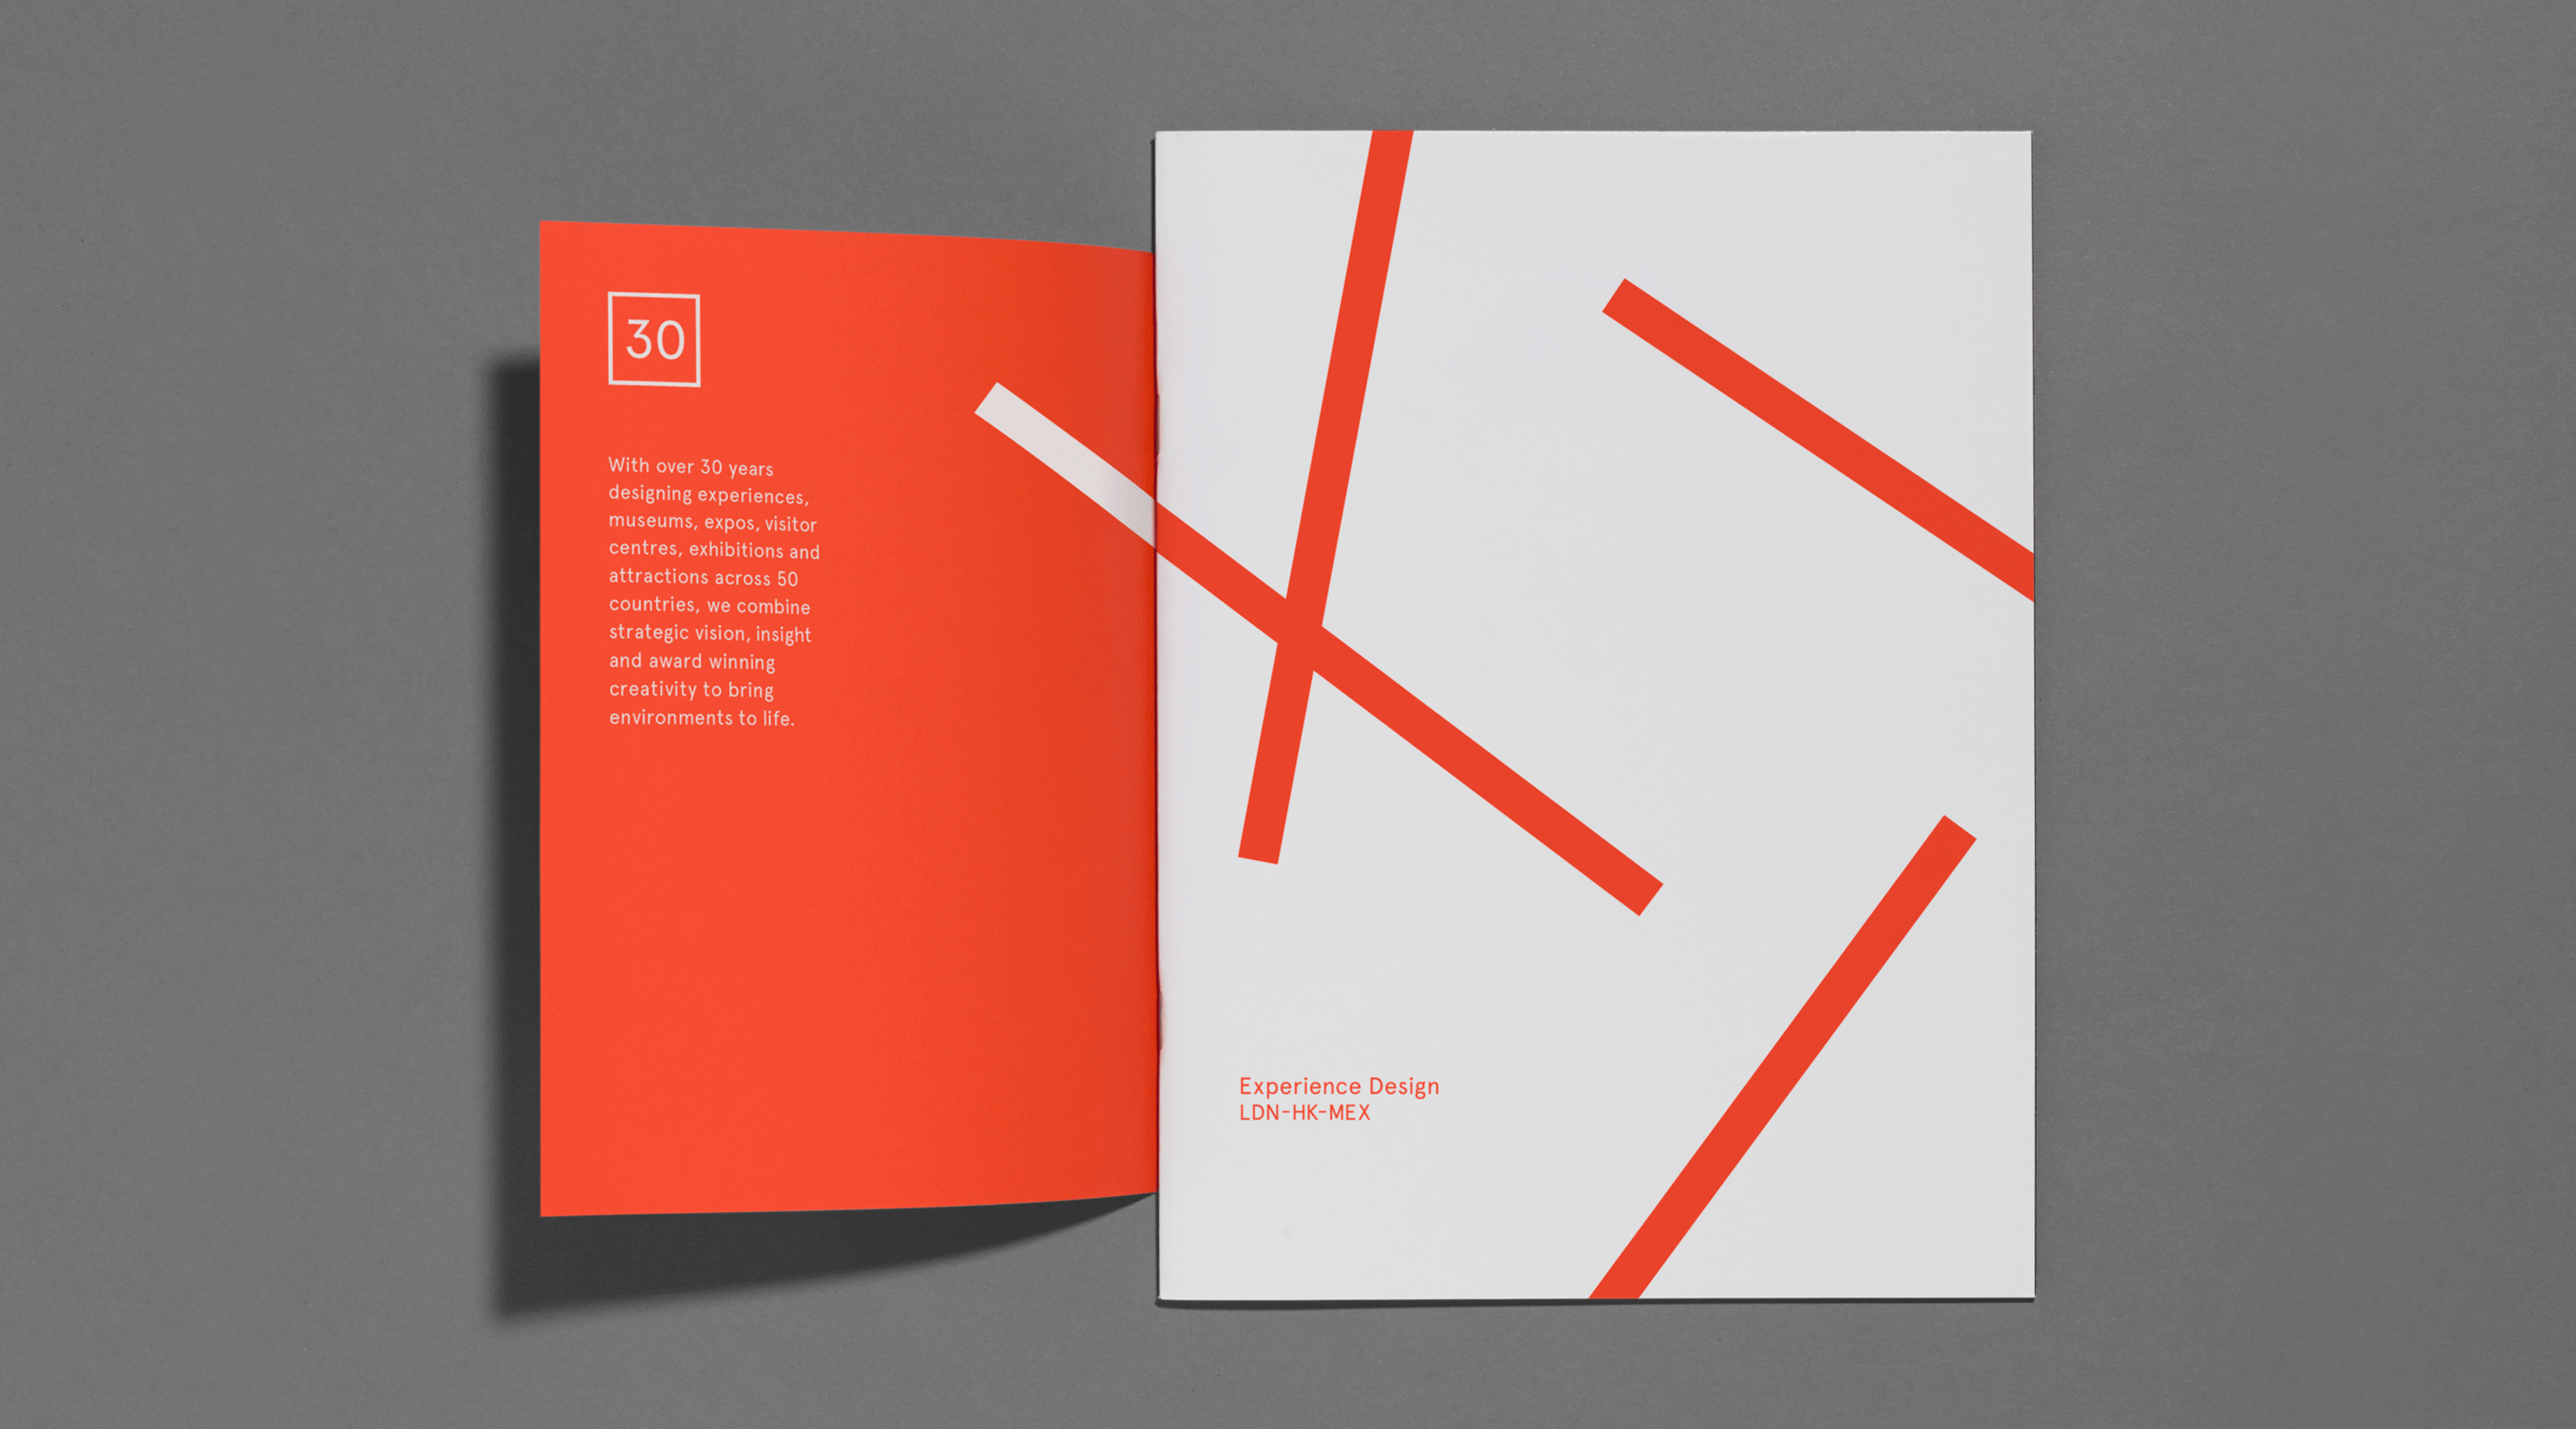 MET – Experience Design / Branding / Identity / Design / Logo / Experiential / Square / Lines / Bright / Colour Palette / Orange / London / Hong Kong / Mexico City / Book / Sleeve / 30 Years